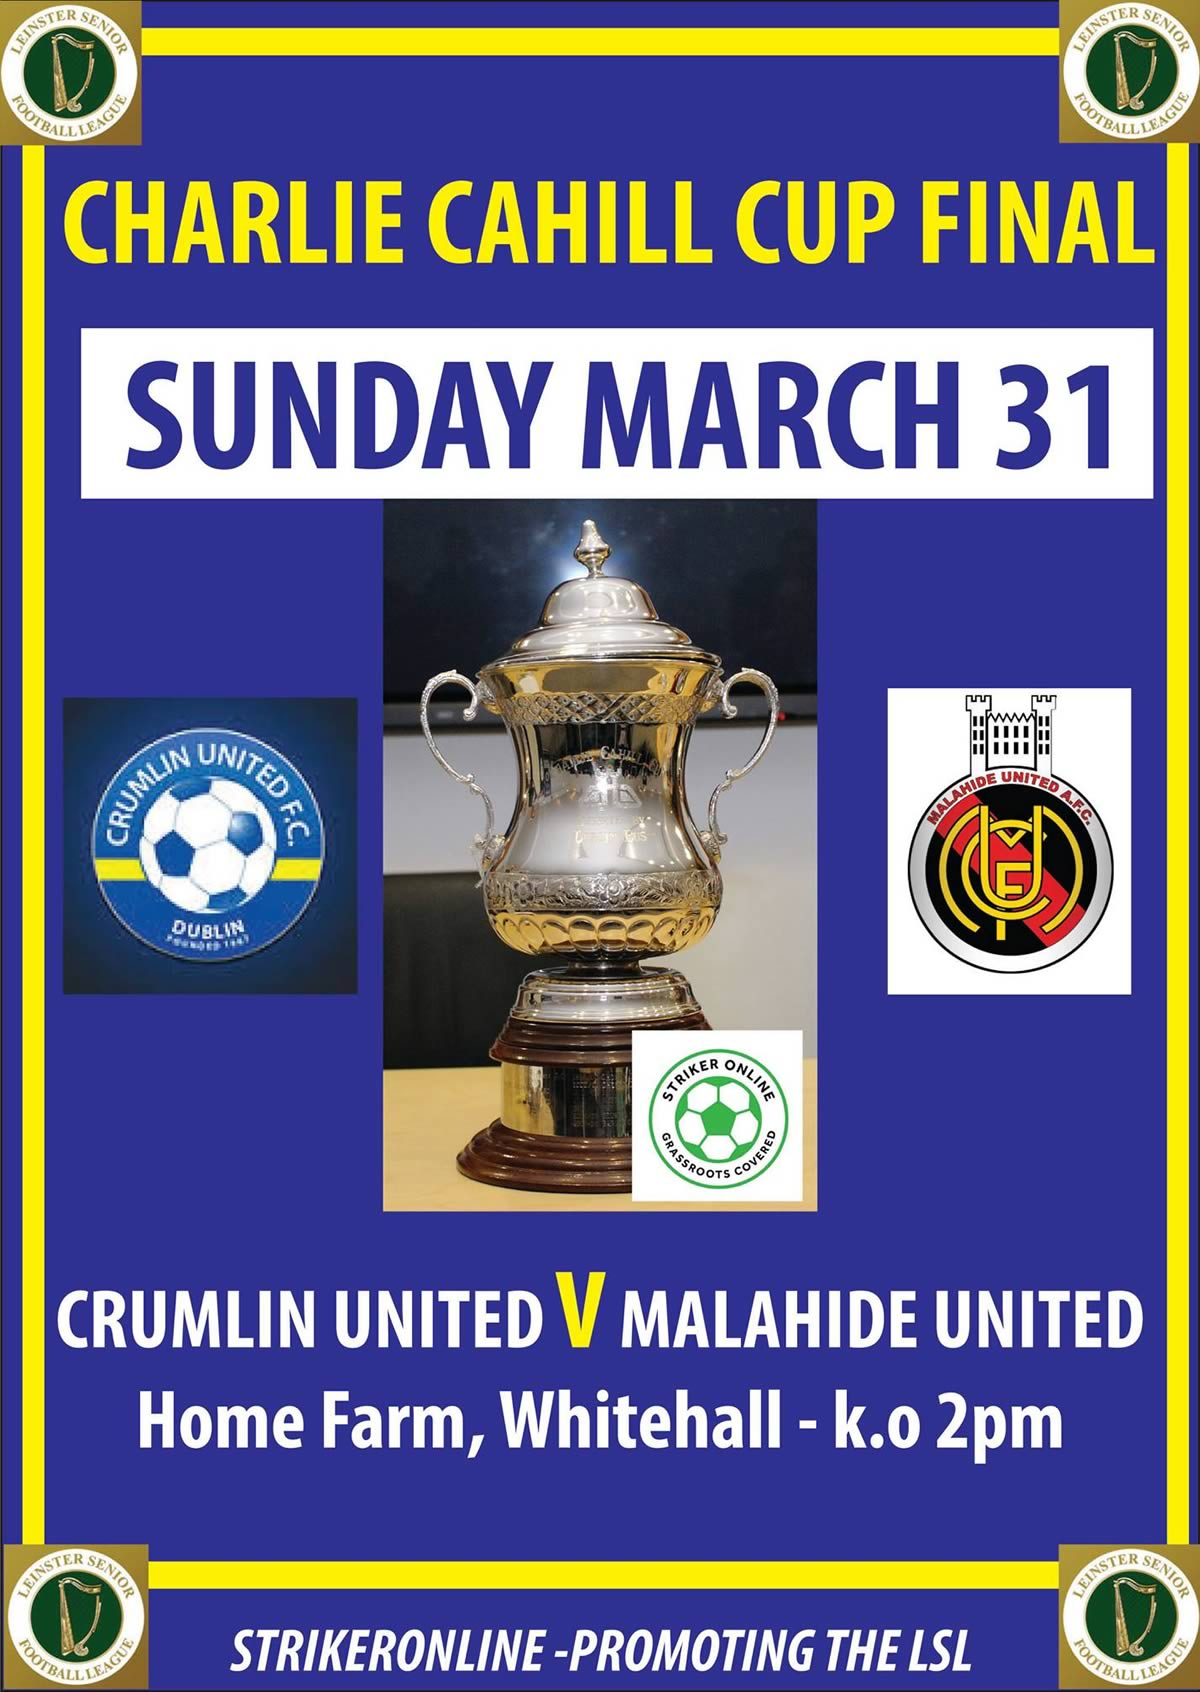 Charlie Cahill Cup Final